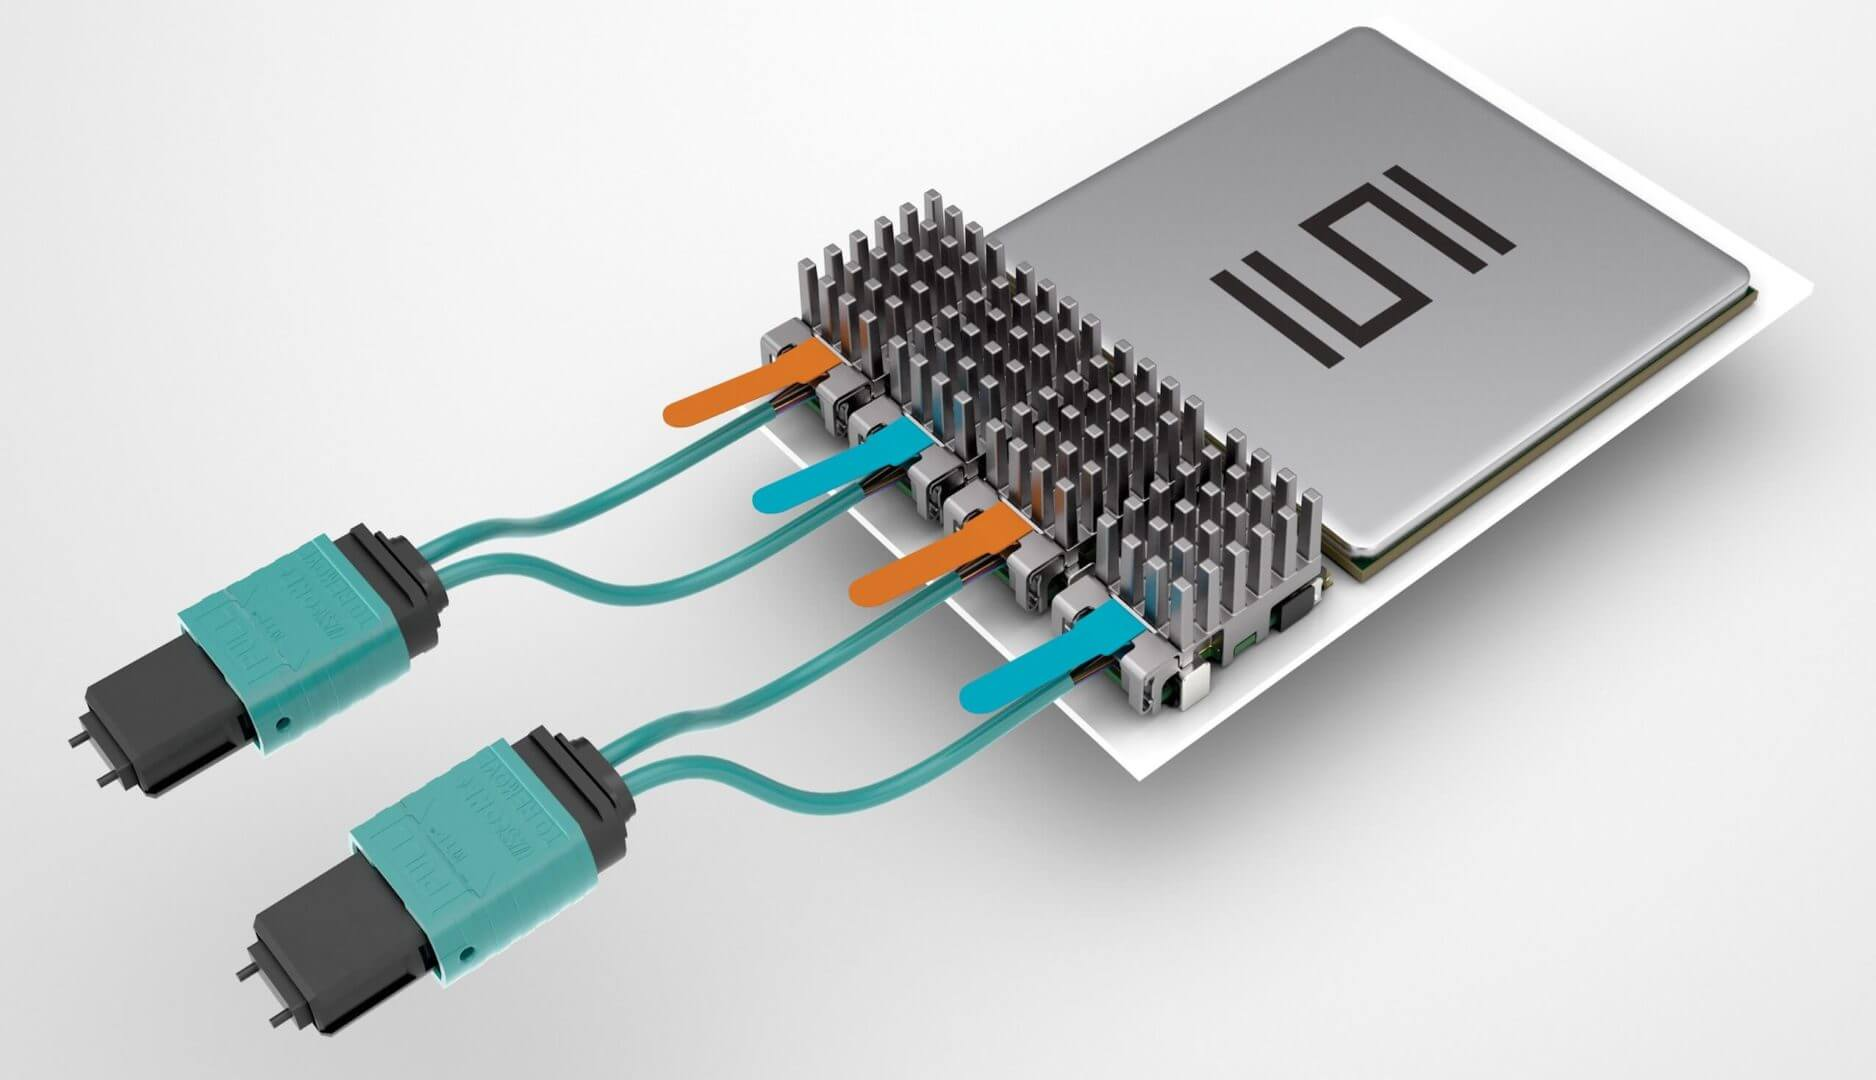 hight resolution of samtec firefly pcie optical flyover cable assembly fully supports pcie 4 0